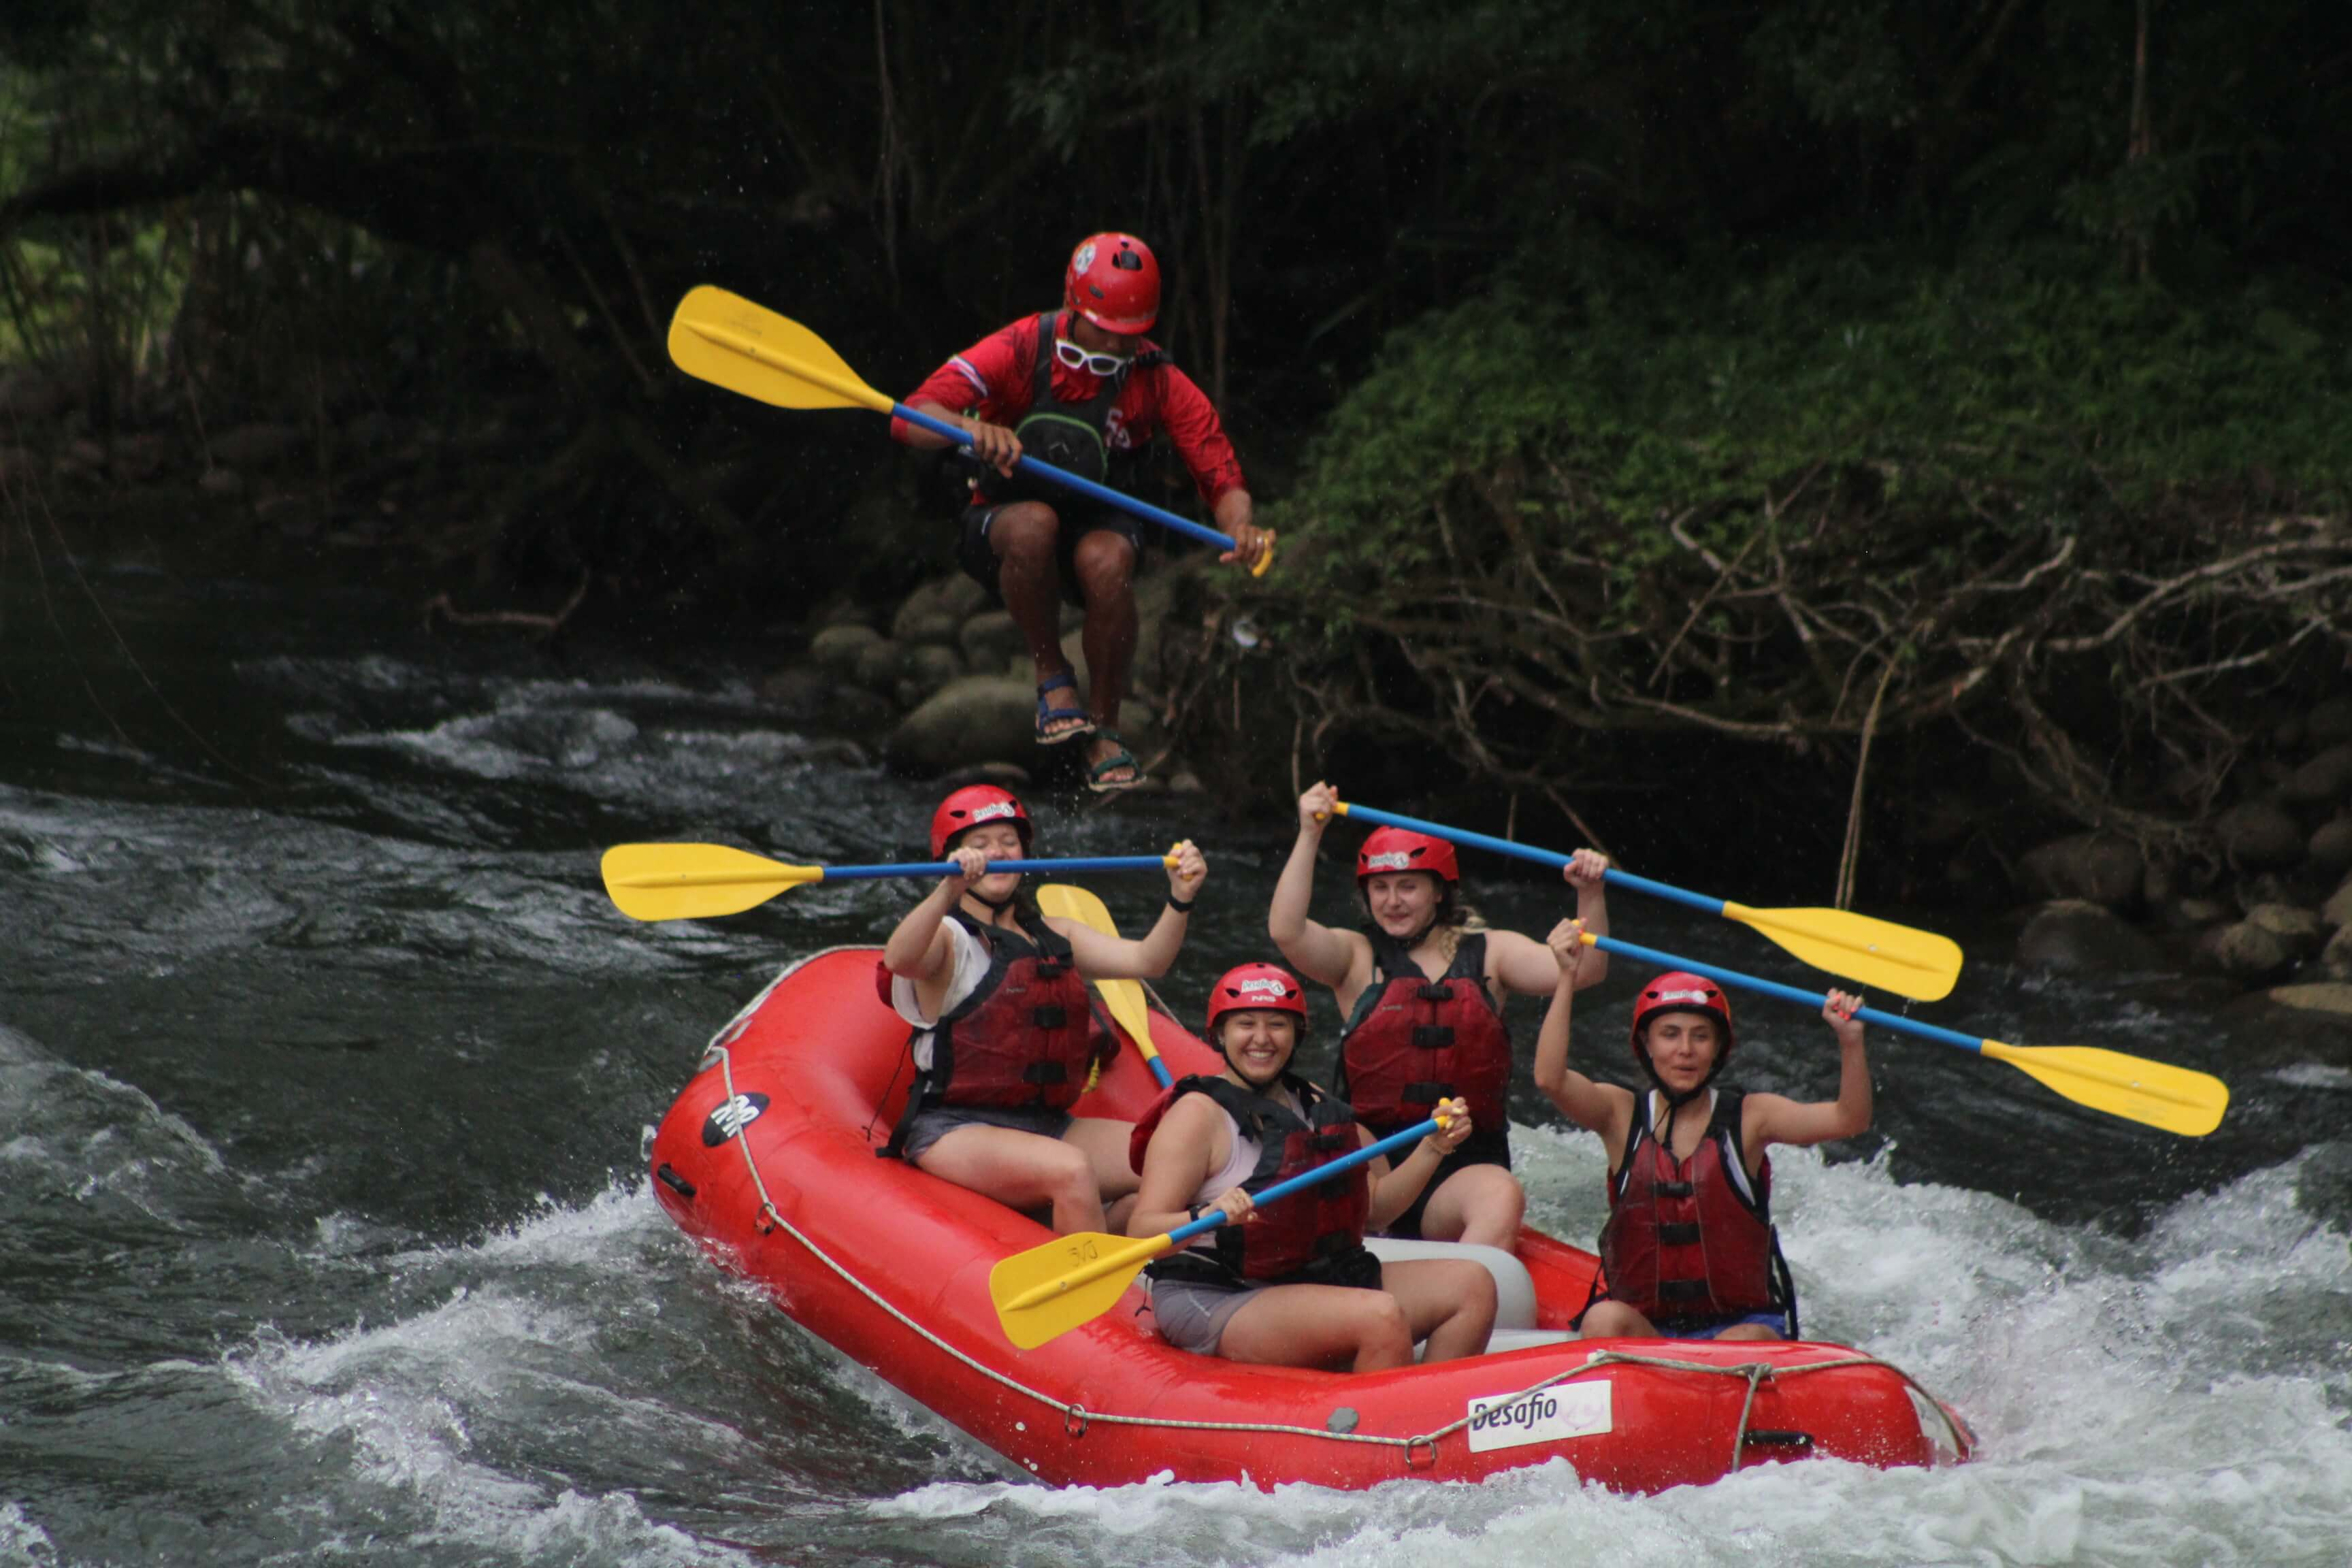 This is the best option for extreme white water rafting in Costa Rica!